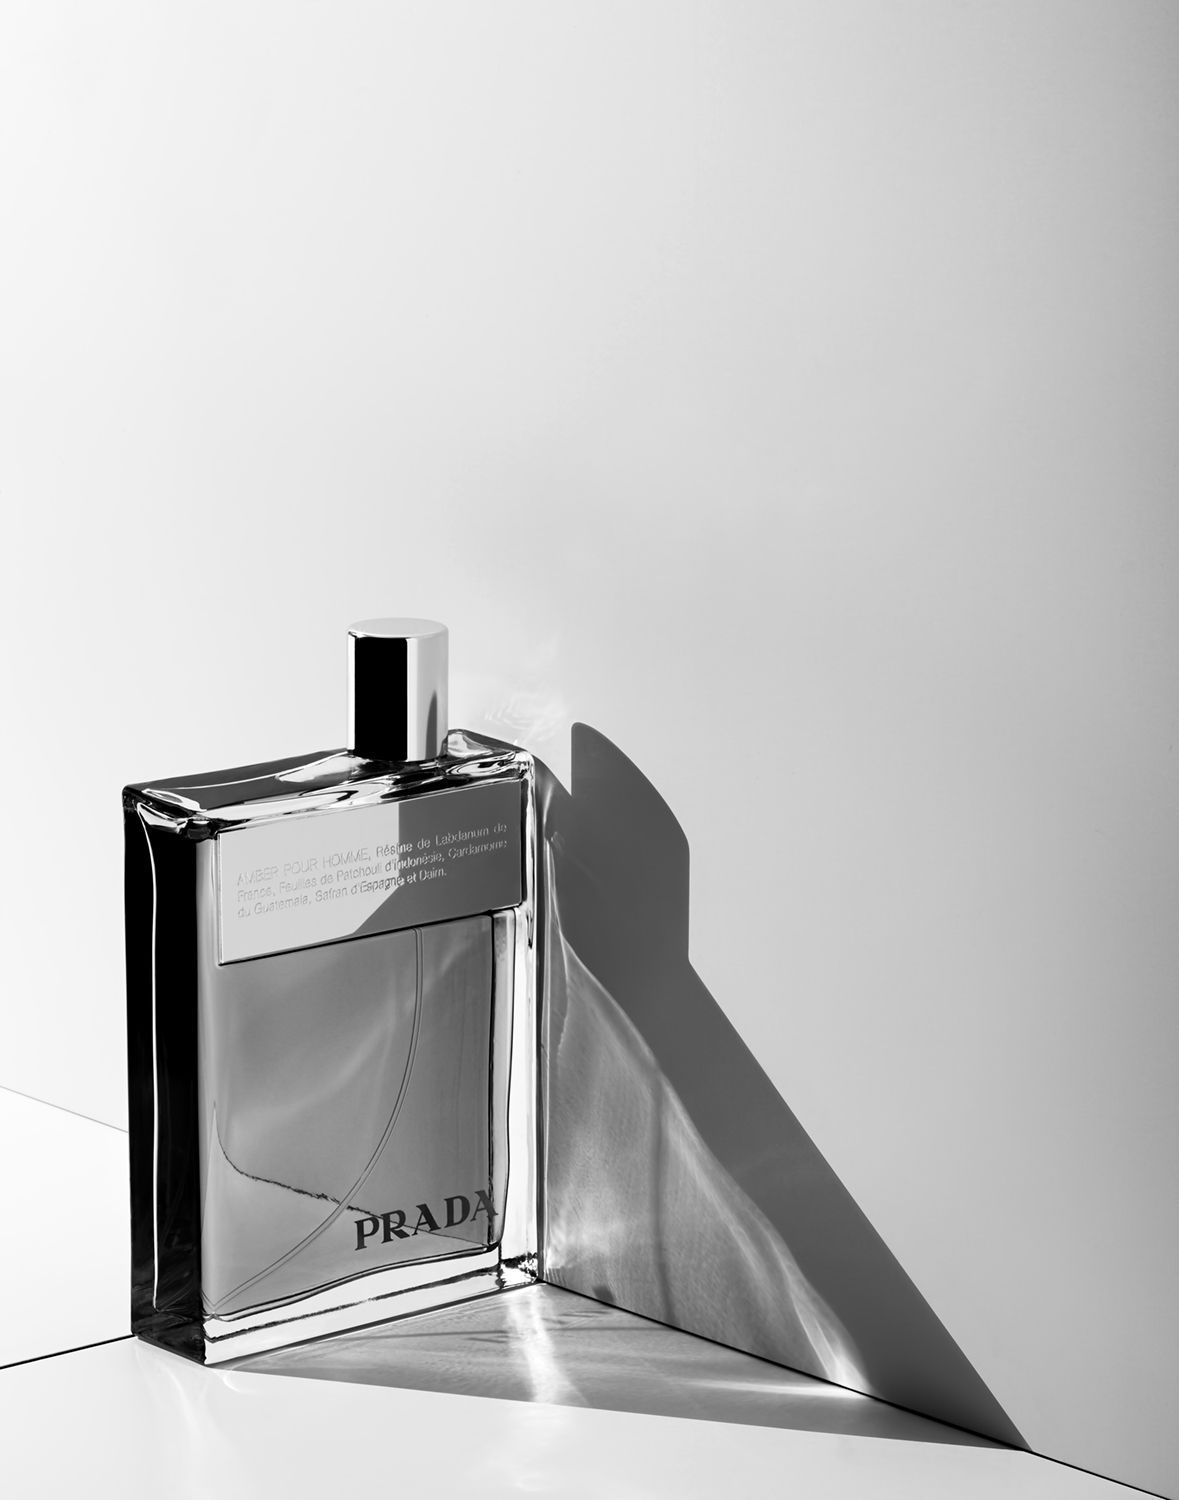 prada perfume, fragrance still life, product photography by marco ...